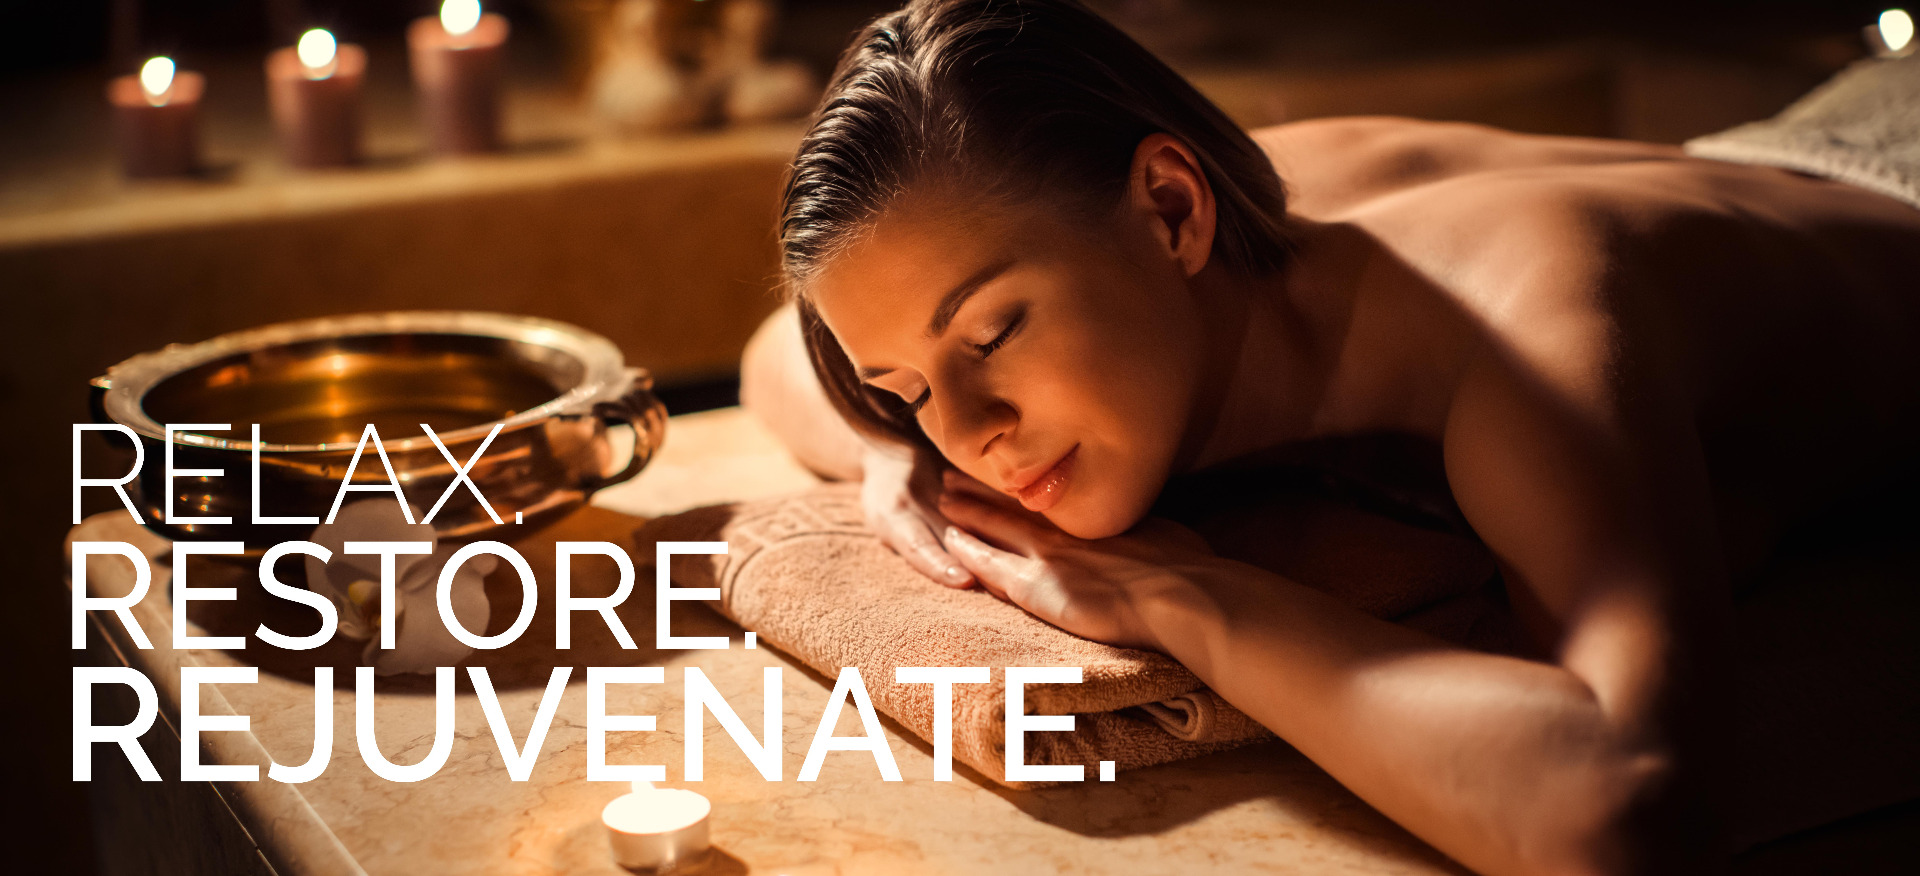 Relax, Restore, and Rejuvenate at Avalon Spa and Salon